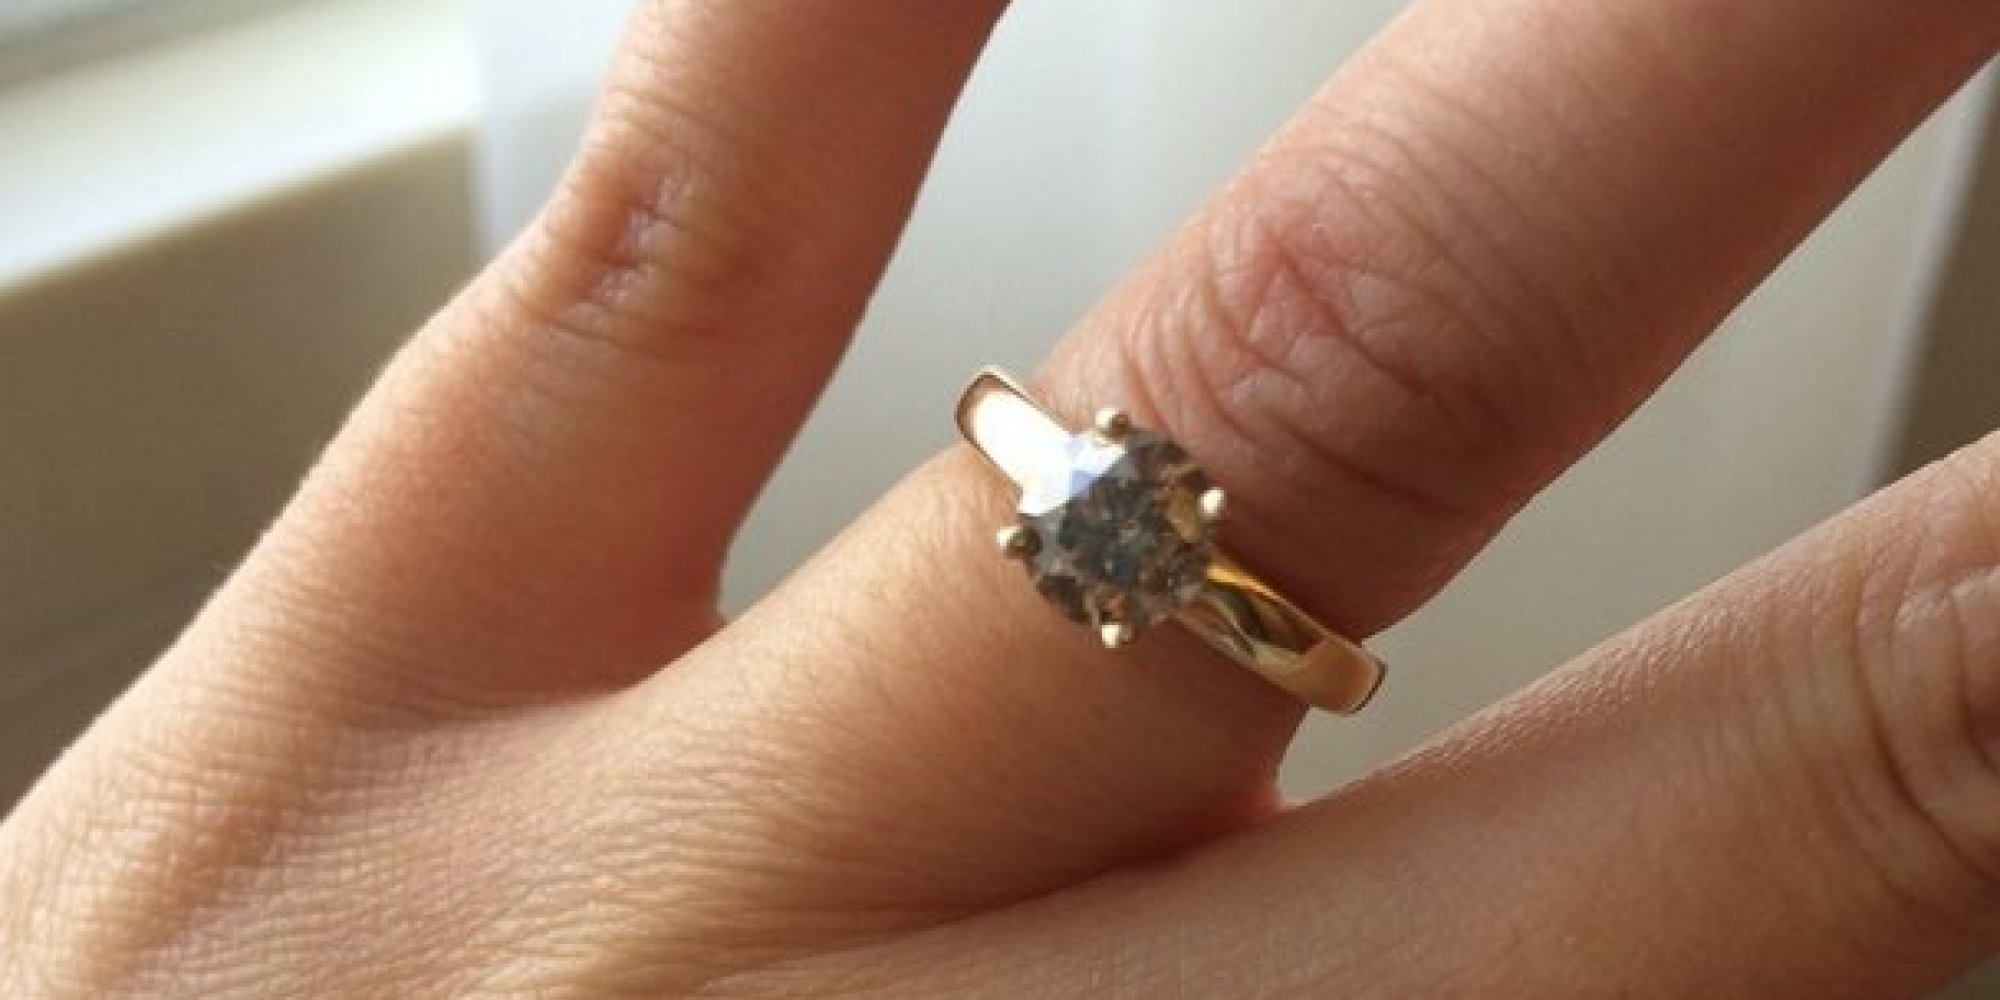 Man Surprises Girlfriend With Handmade Engagement Ring